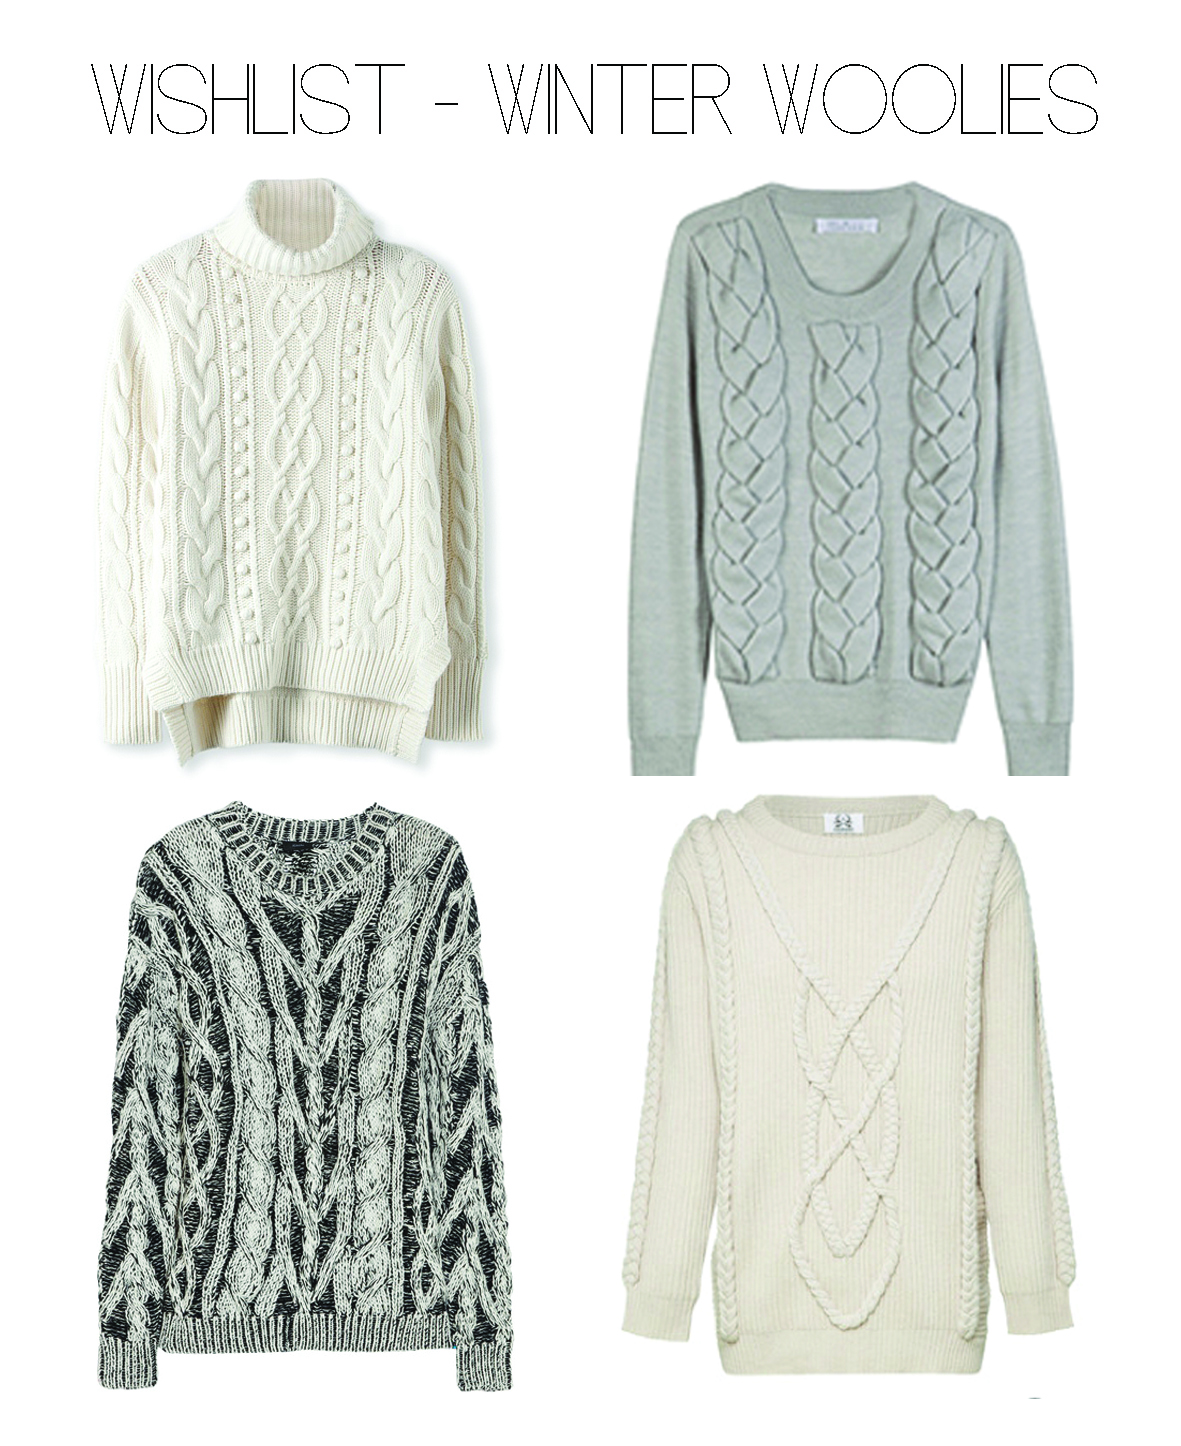 Wishlist Winter woolies